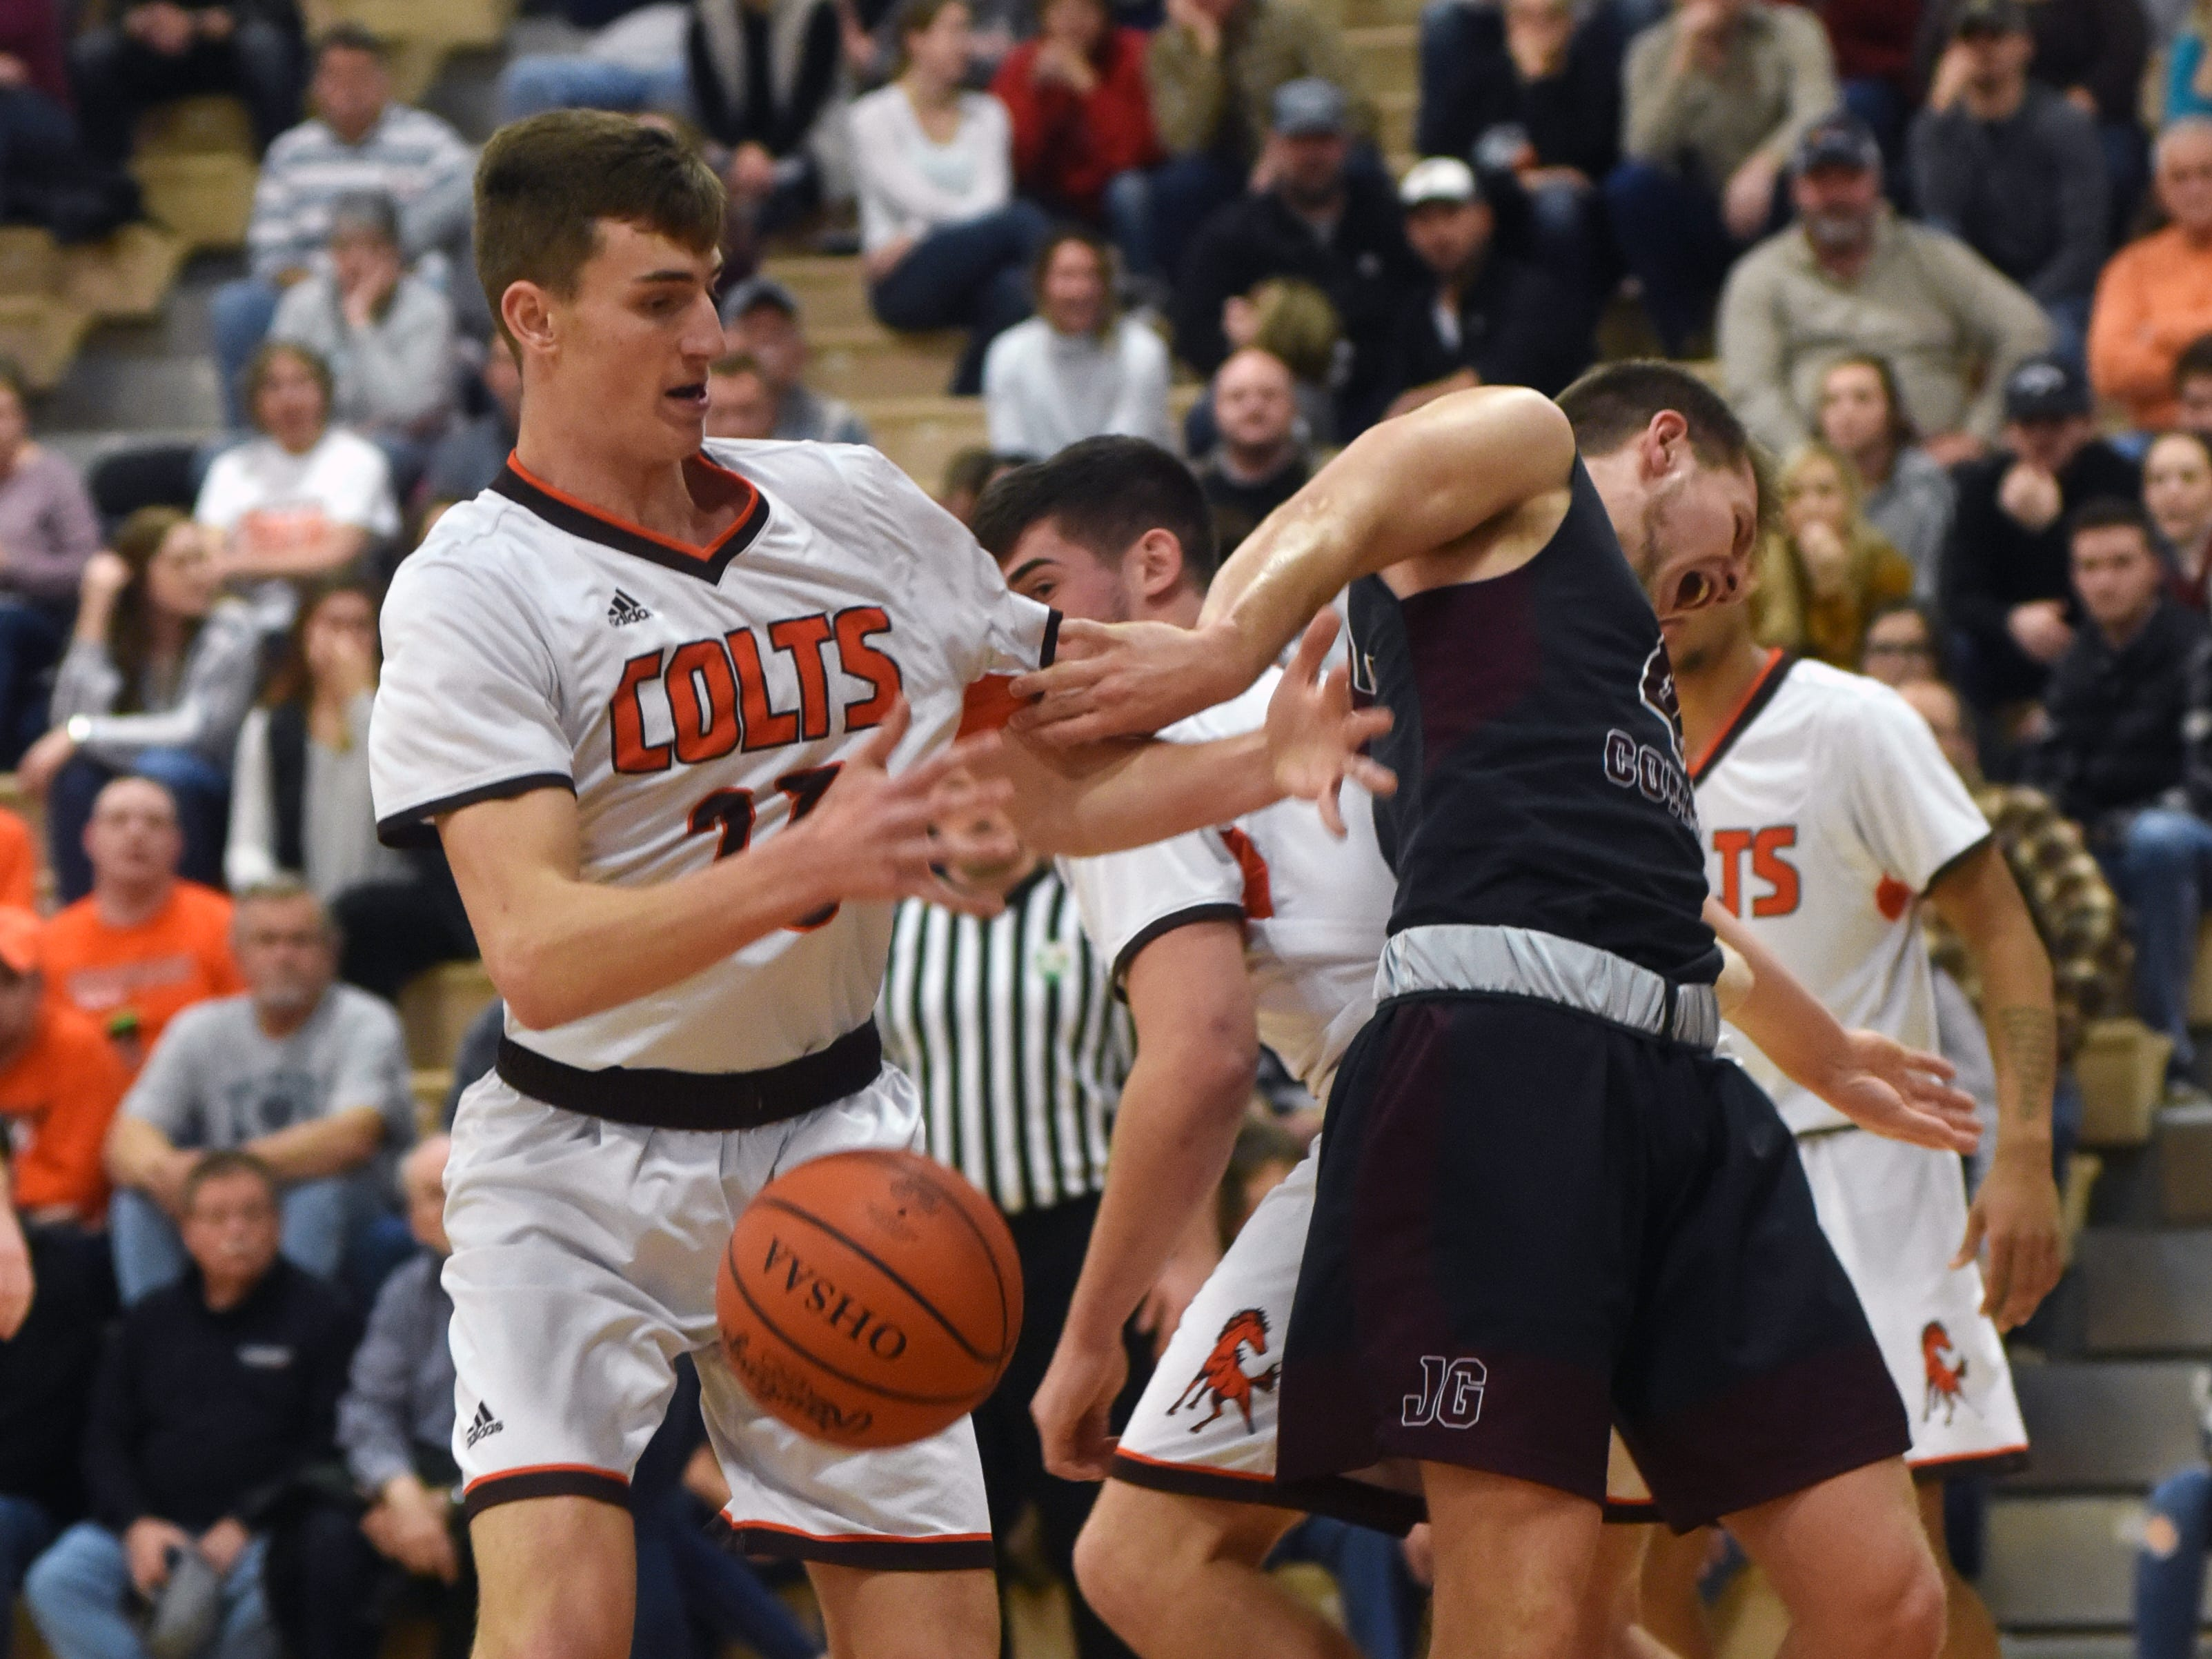 Meadowbrook's Addy Black, left, and John Glenn's Ben Judd get mixed up going for a rebound on Friday night in Byesville.